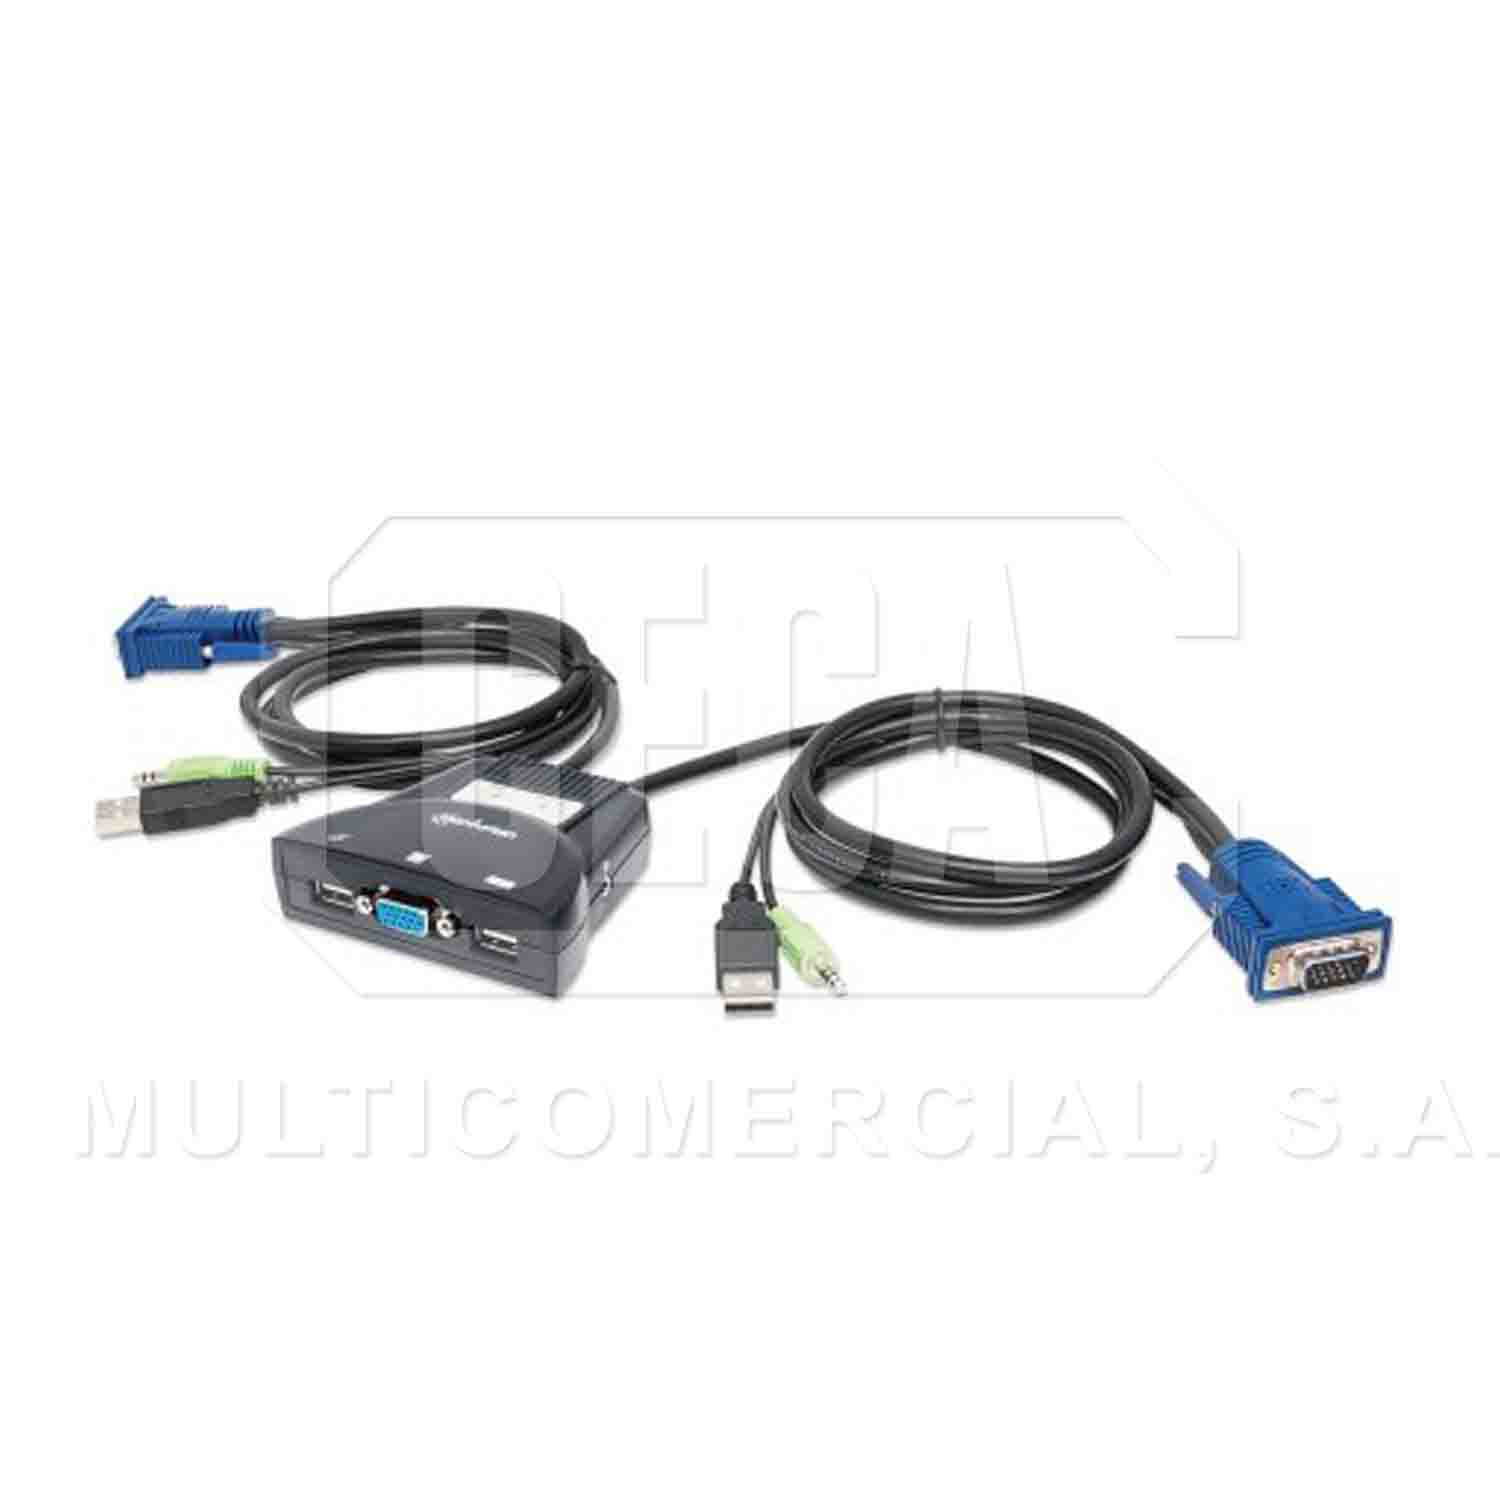 Kvm Switch Mht 2 Pts Usb Y Audio 3 5mm Multicomercial S A